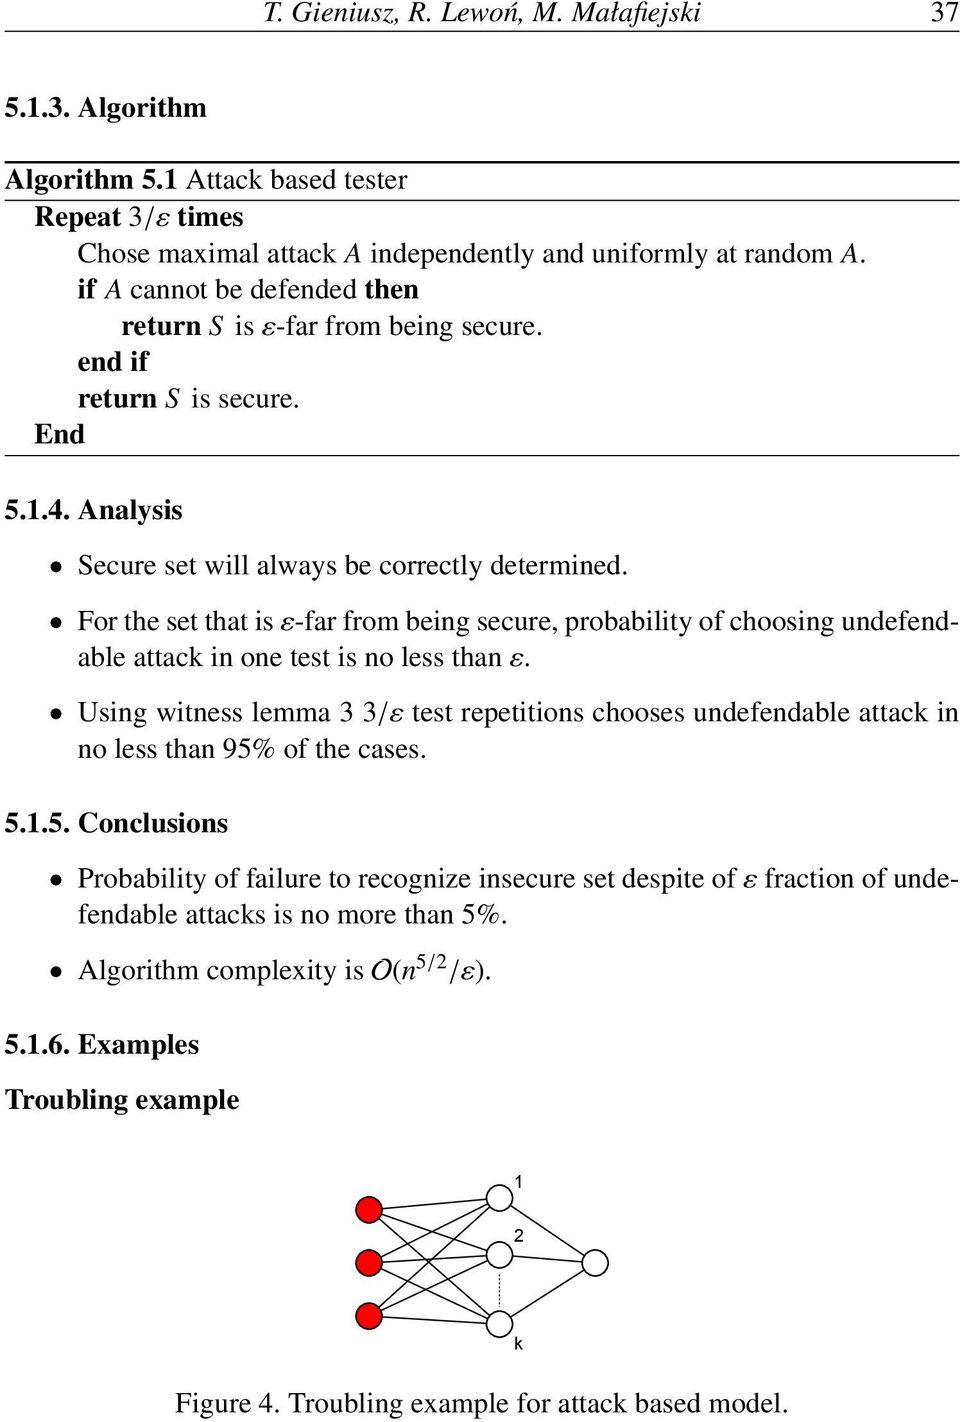 For the set that is ε-far from being secure, probability of choosing undefendable attack in one test is no less than ε.